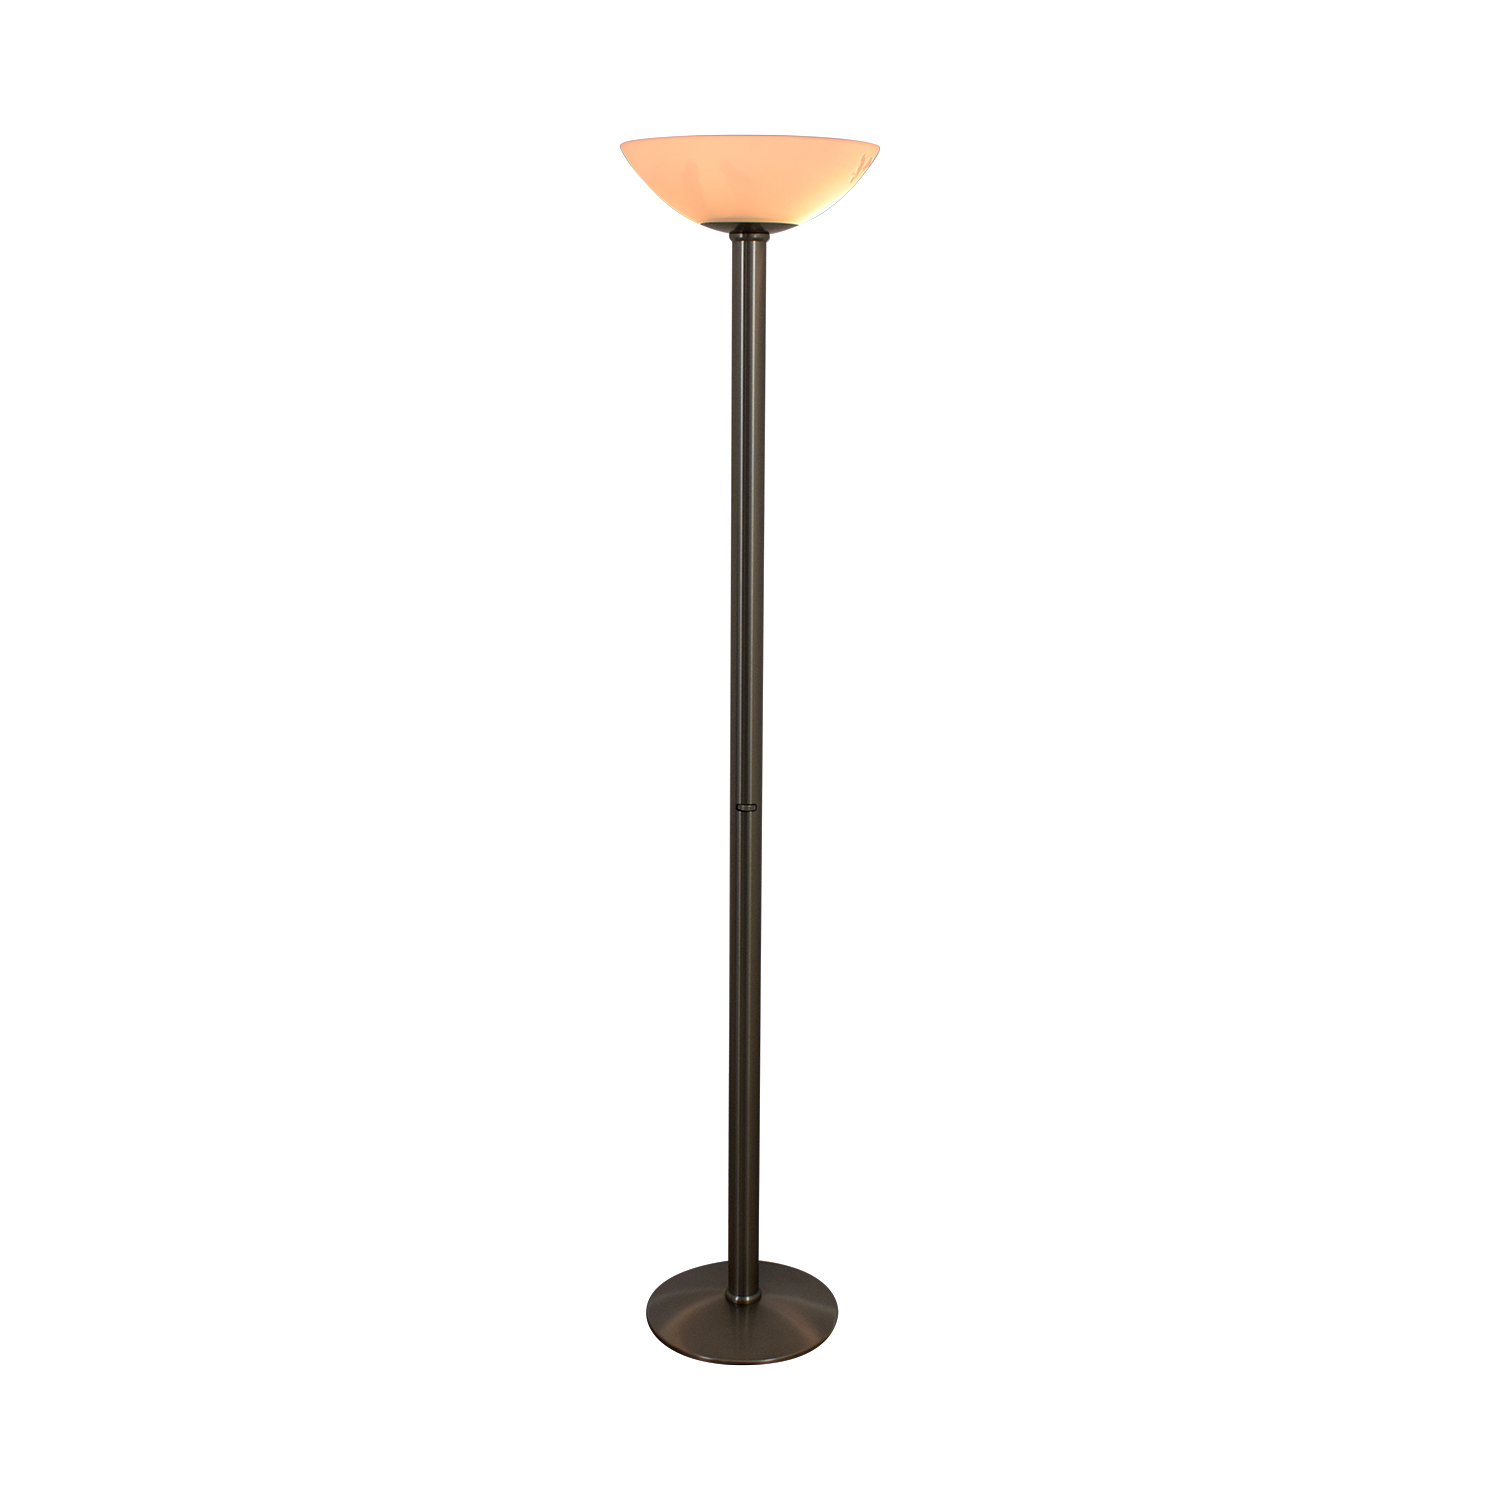 Holtkotter Lighting Holtkotter Lighting 2573 Satin Nickel Torcherie Floor Lamp used